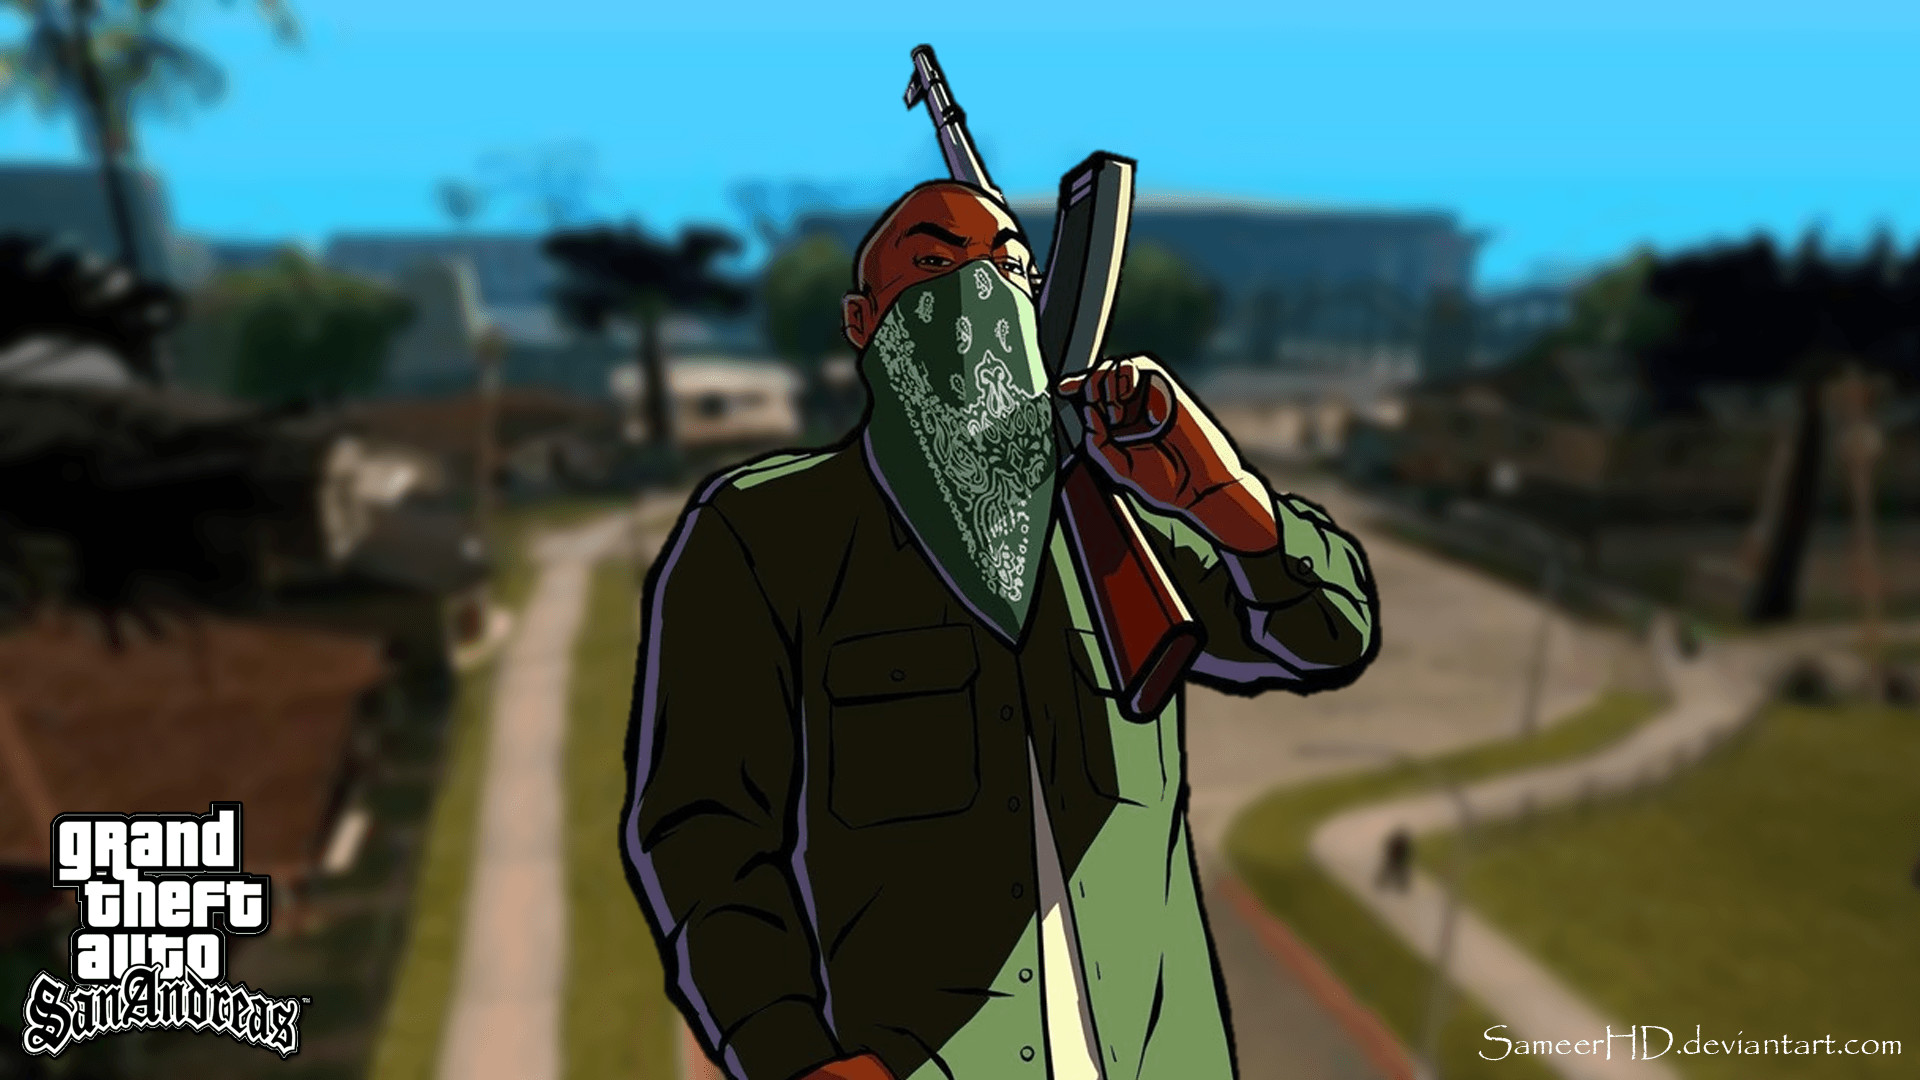 Grand Theft Auto San Andreas Wallpapers (55+ images)